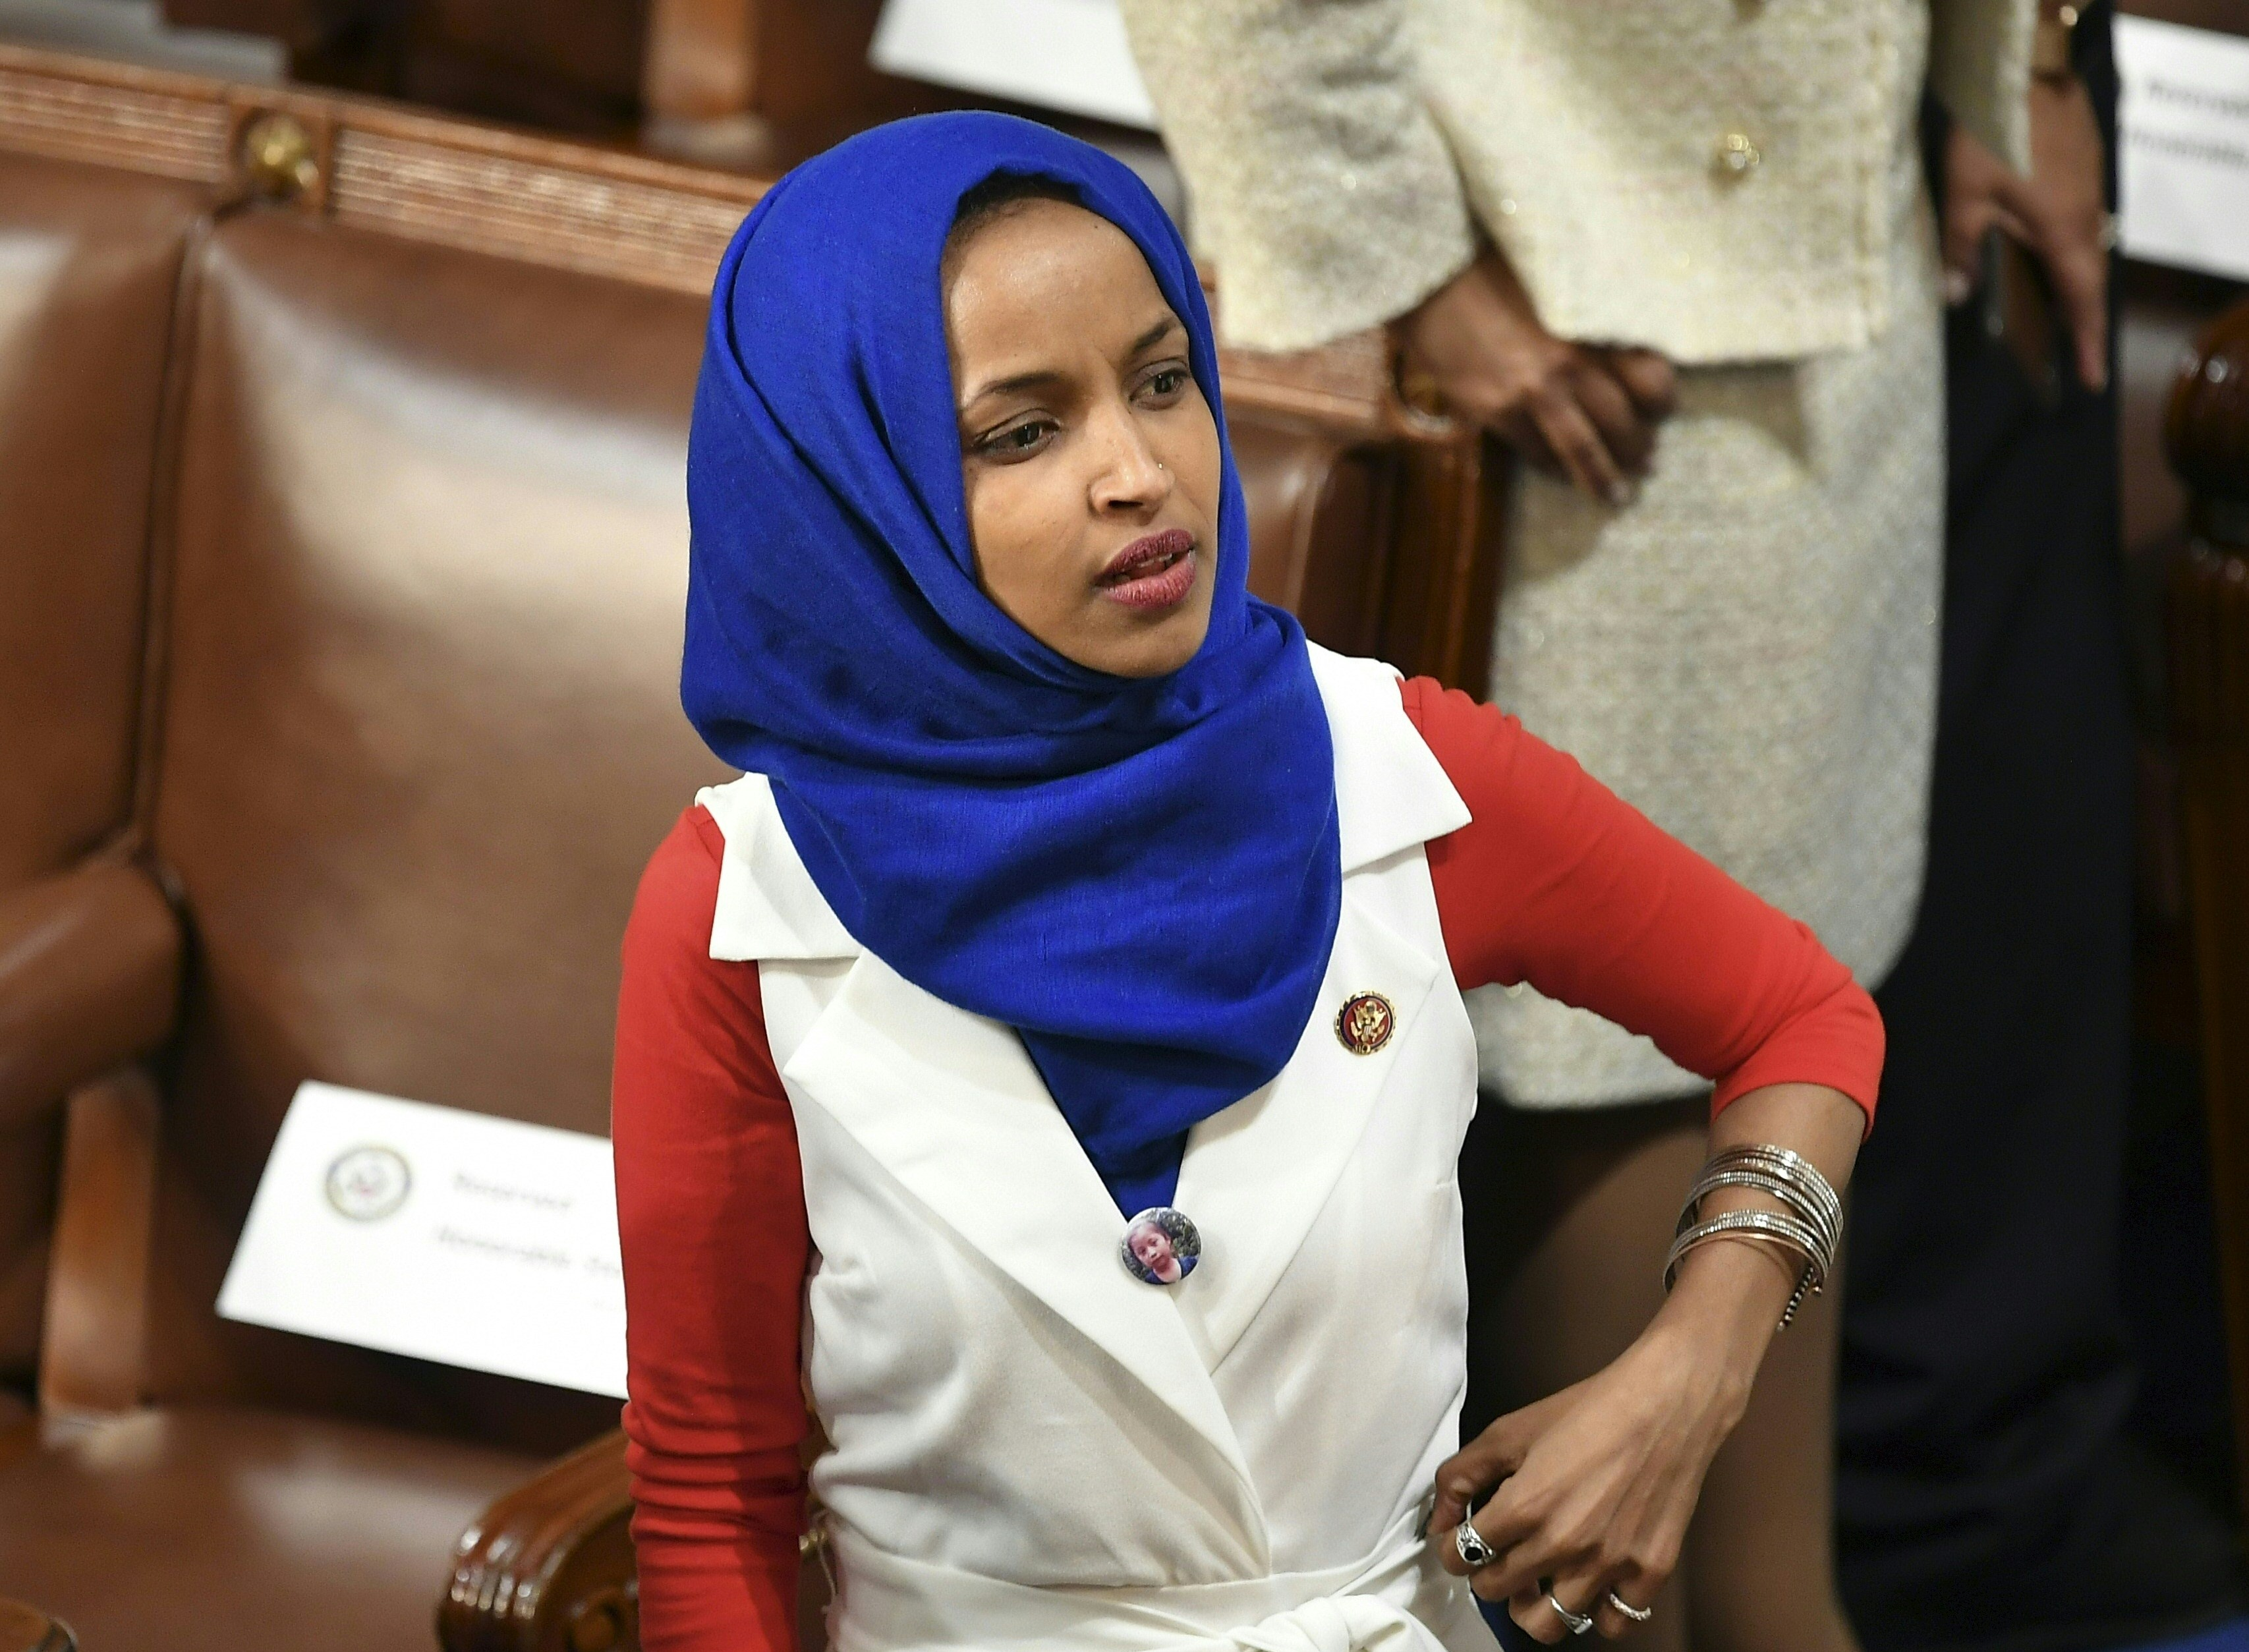 Ilhan Omar is helping turn the tables in Congress and the US establishment is freaking out